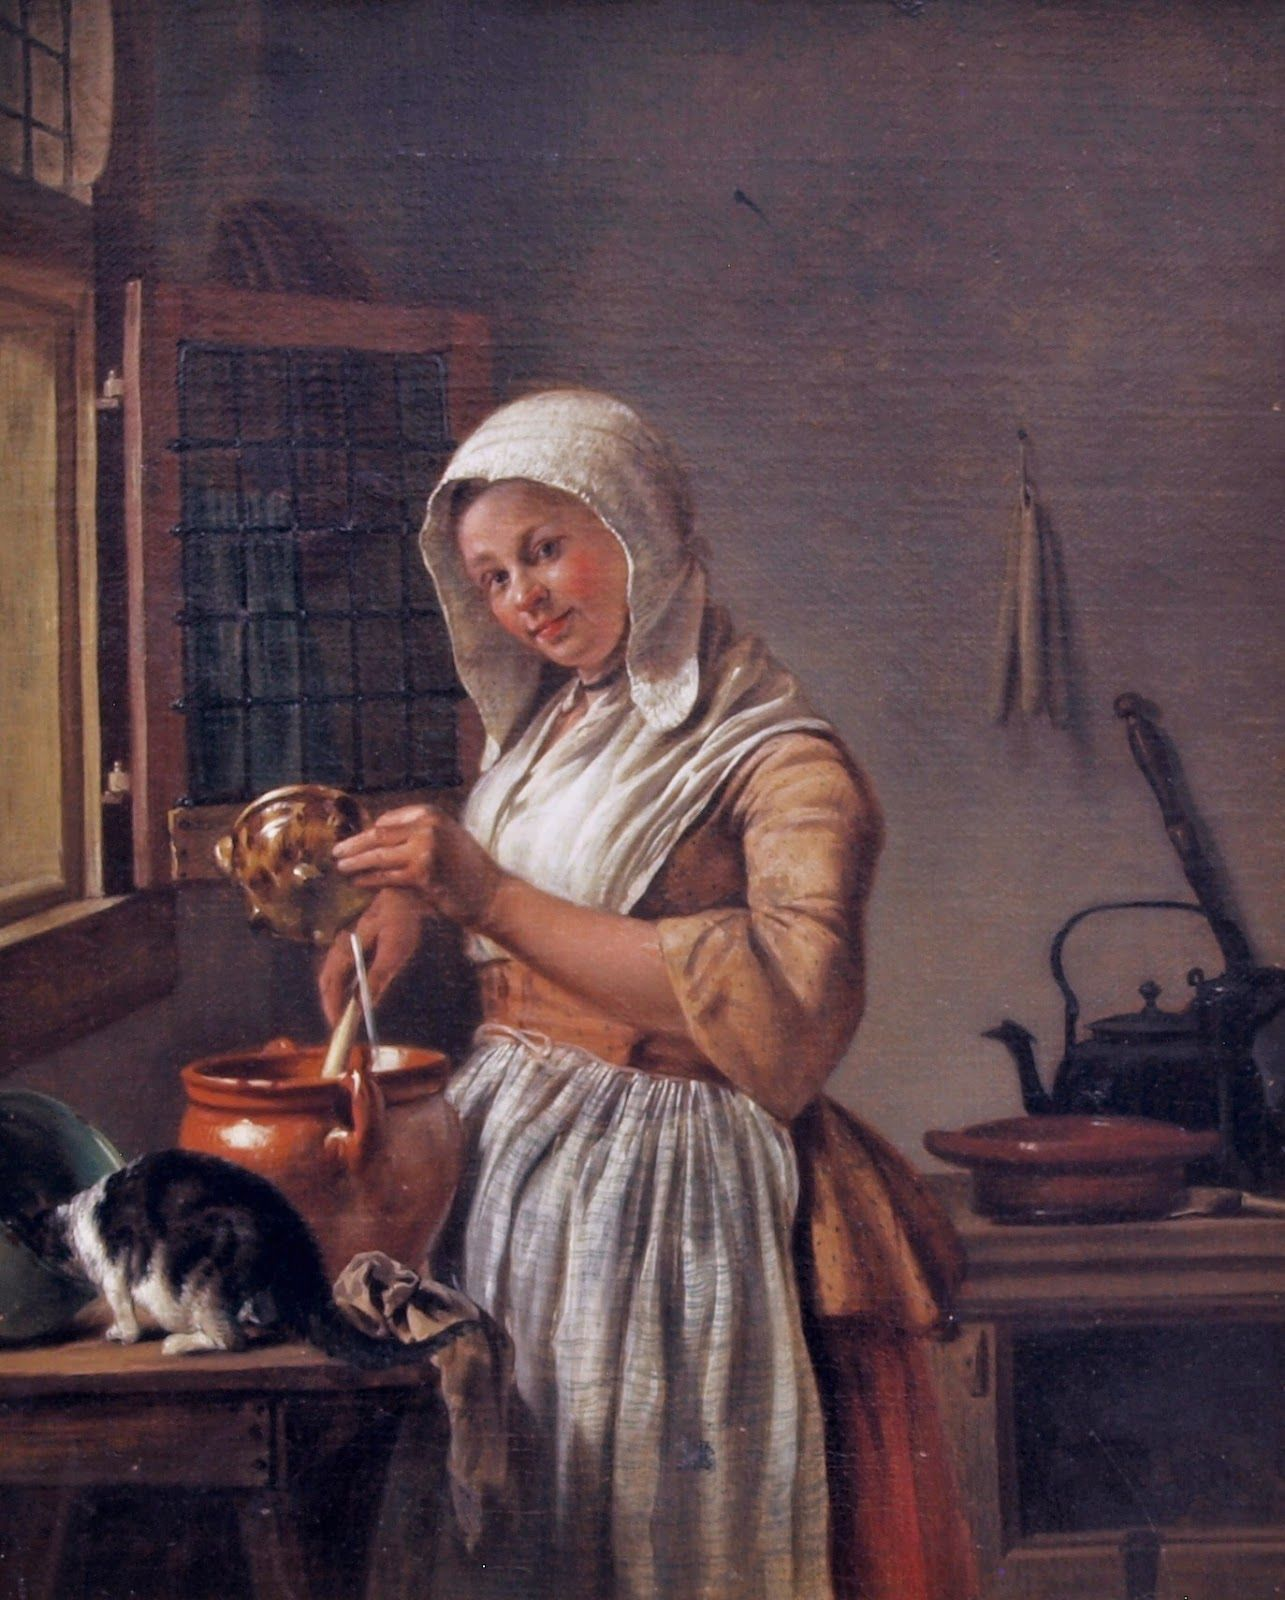 wybrand hendriks dutch painter milkmaid th wybrand hendriks dutch painter 1744 1831 milkmaid 1800 18th century painting of old w over time bedgowns also called in this context short